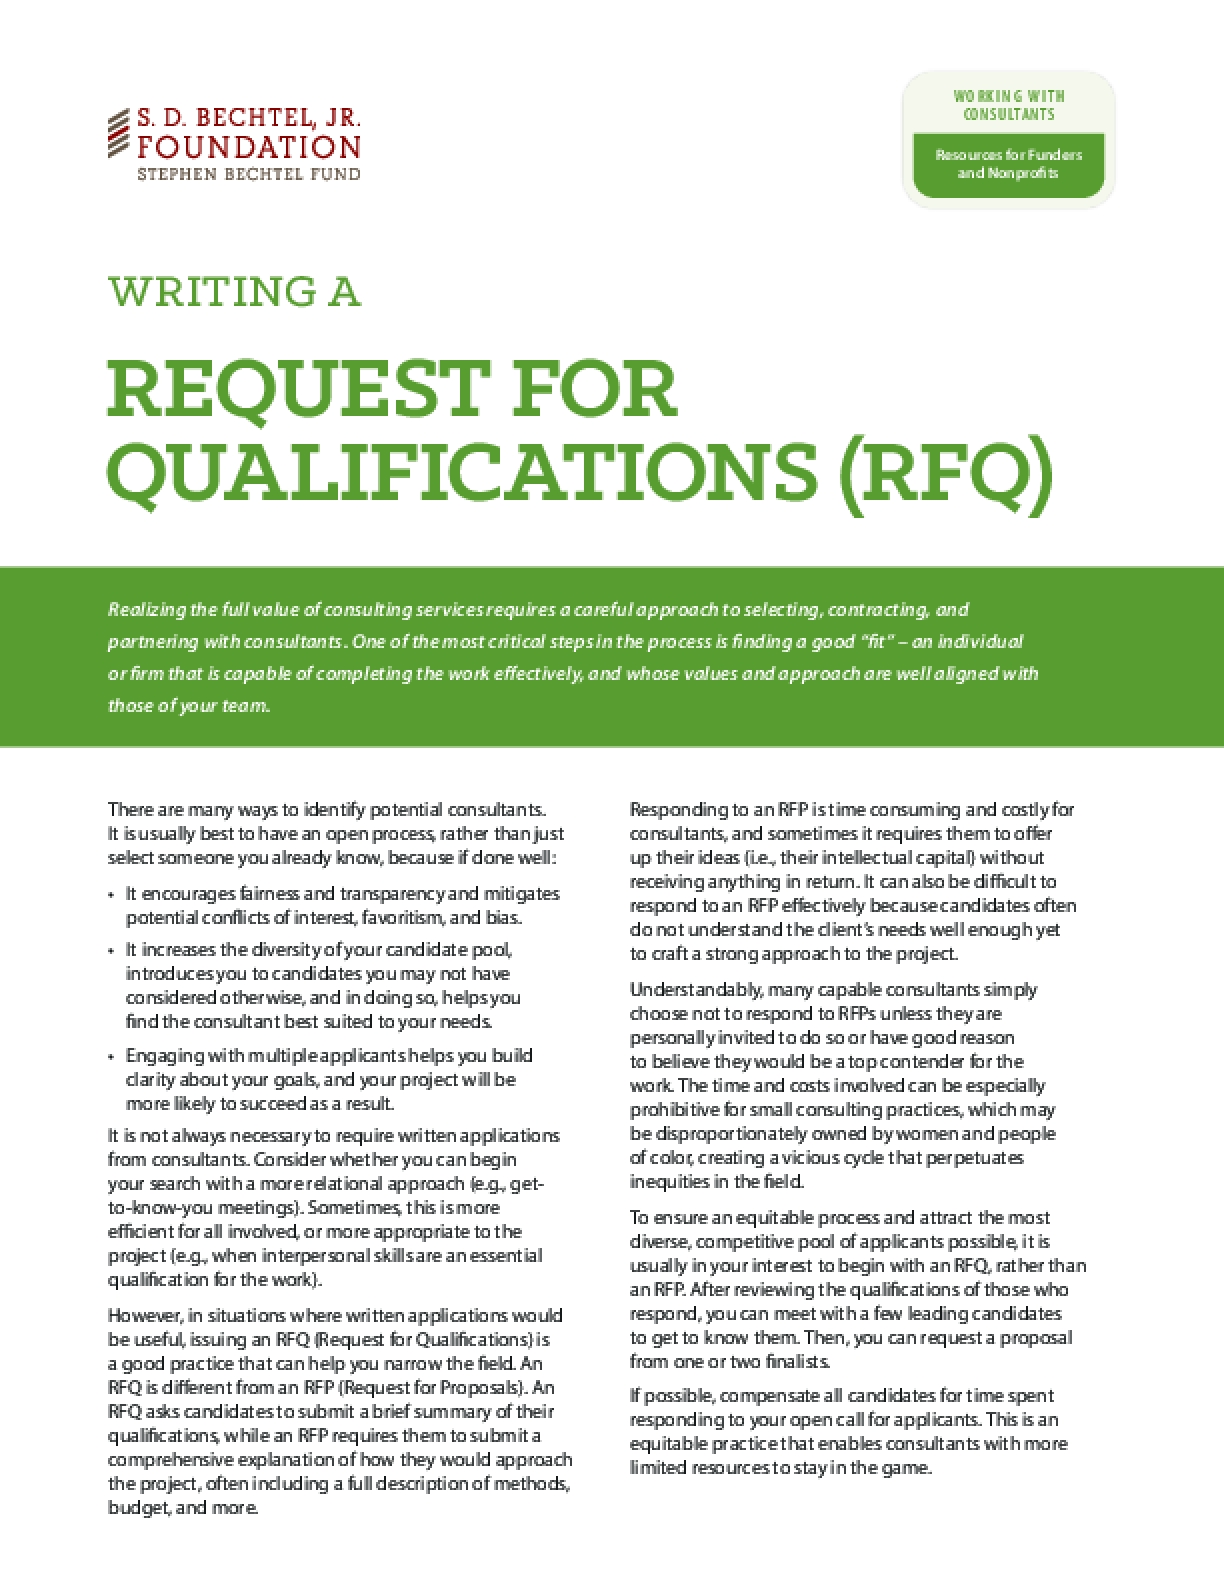 Writing a Request for Qualifications (RFQ)